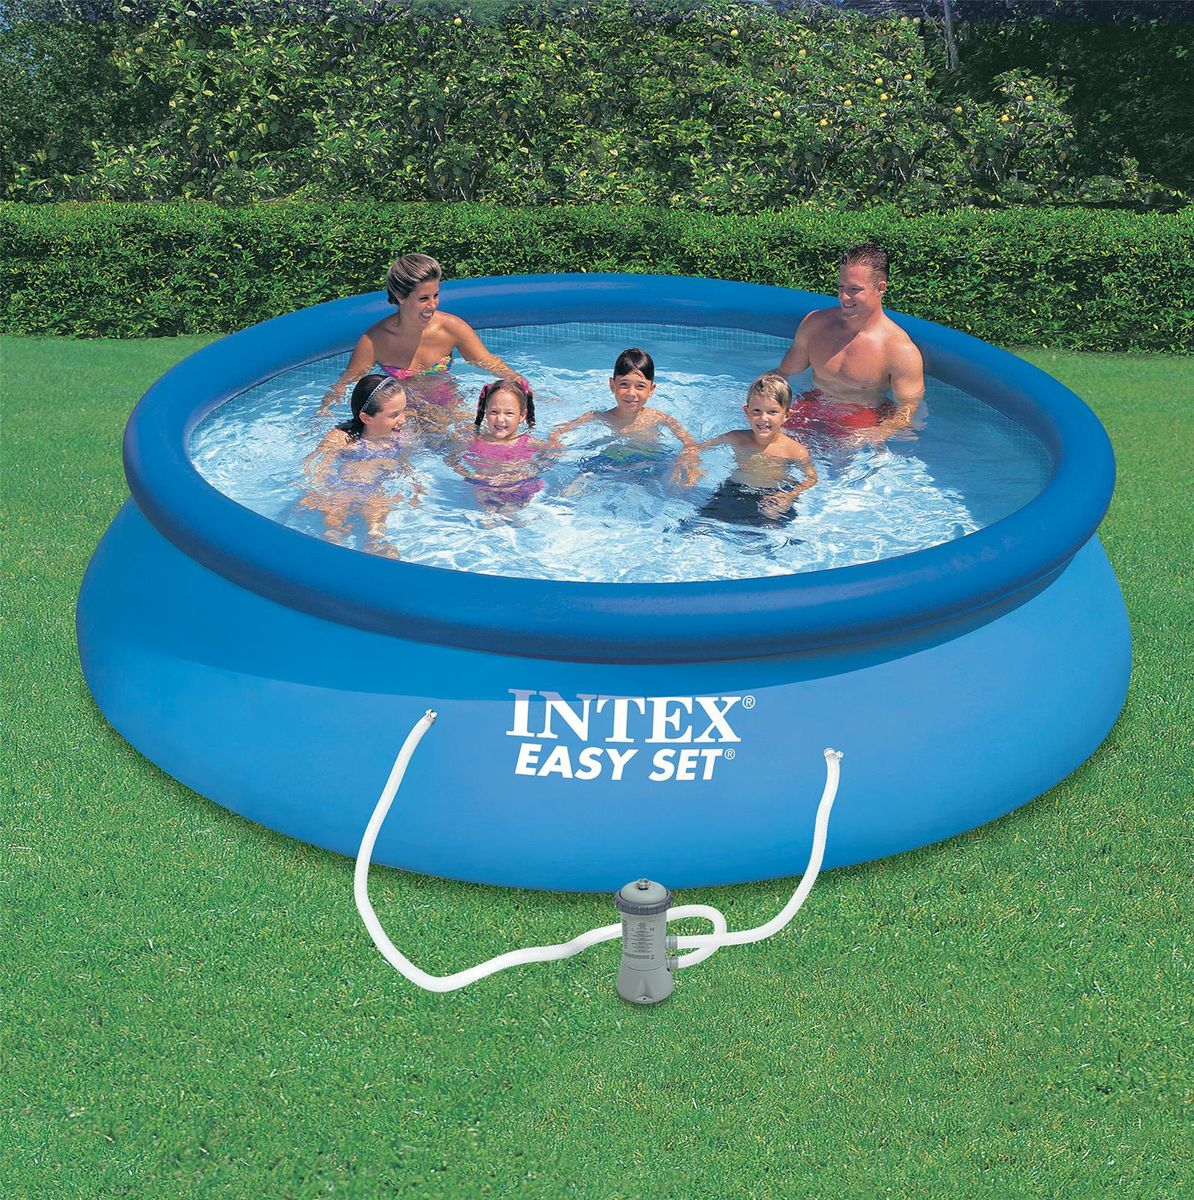 Piscine intex easy set 3 66x0 76 cash piscines for Quelle piscine hors sol choisir